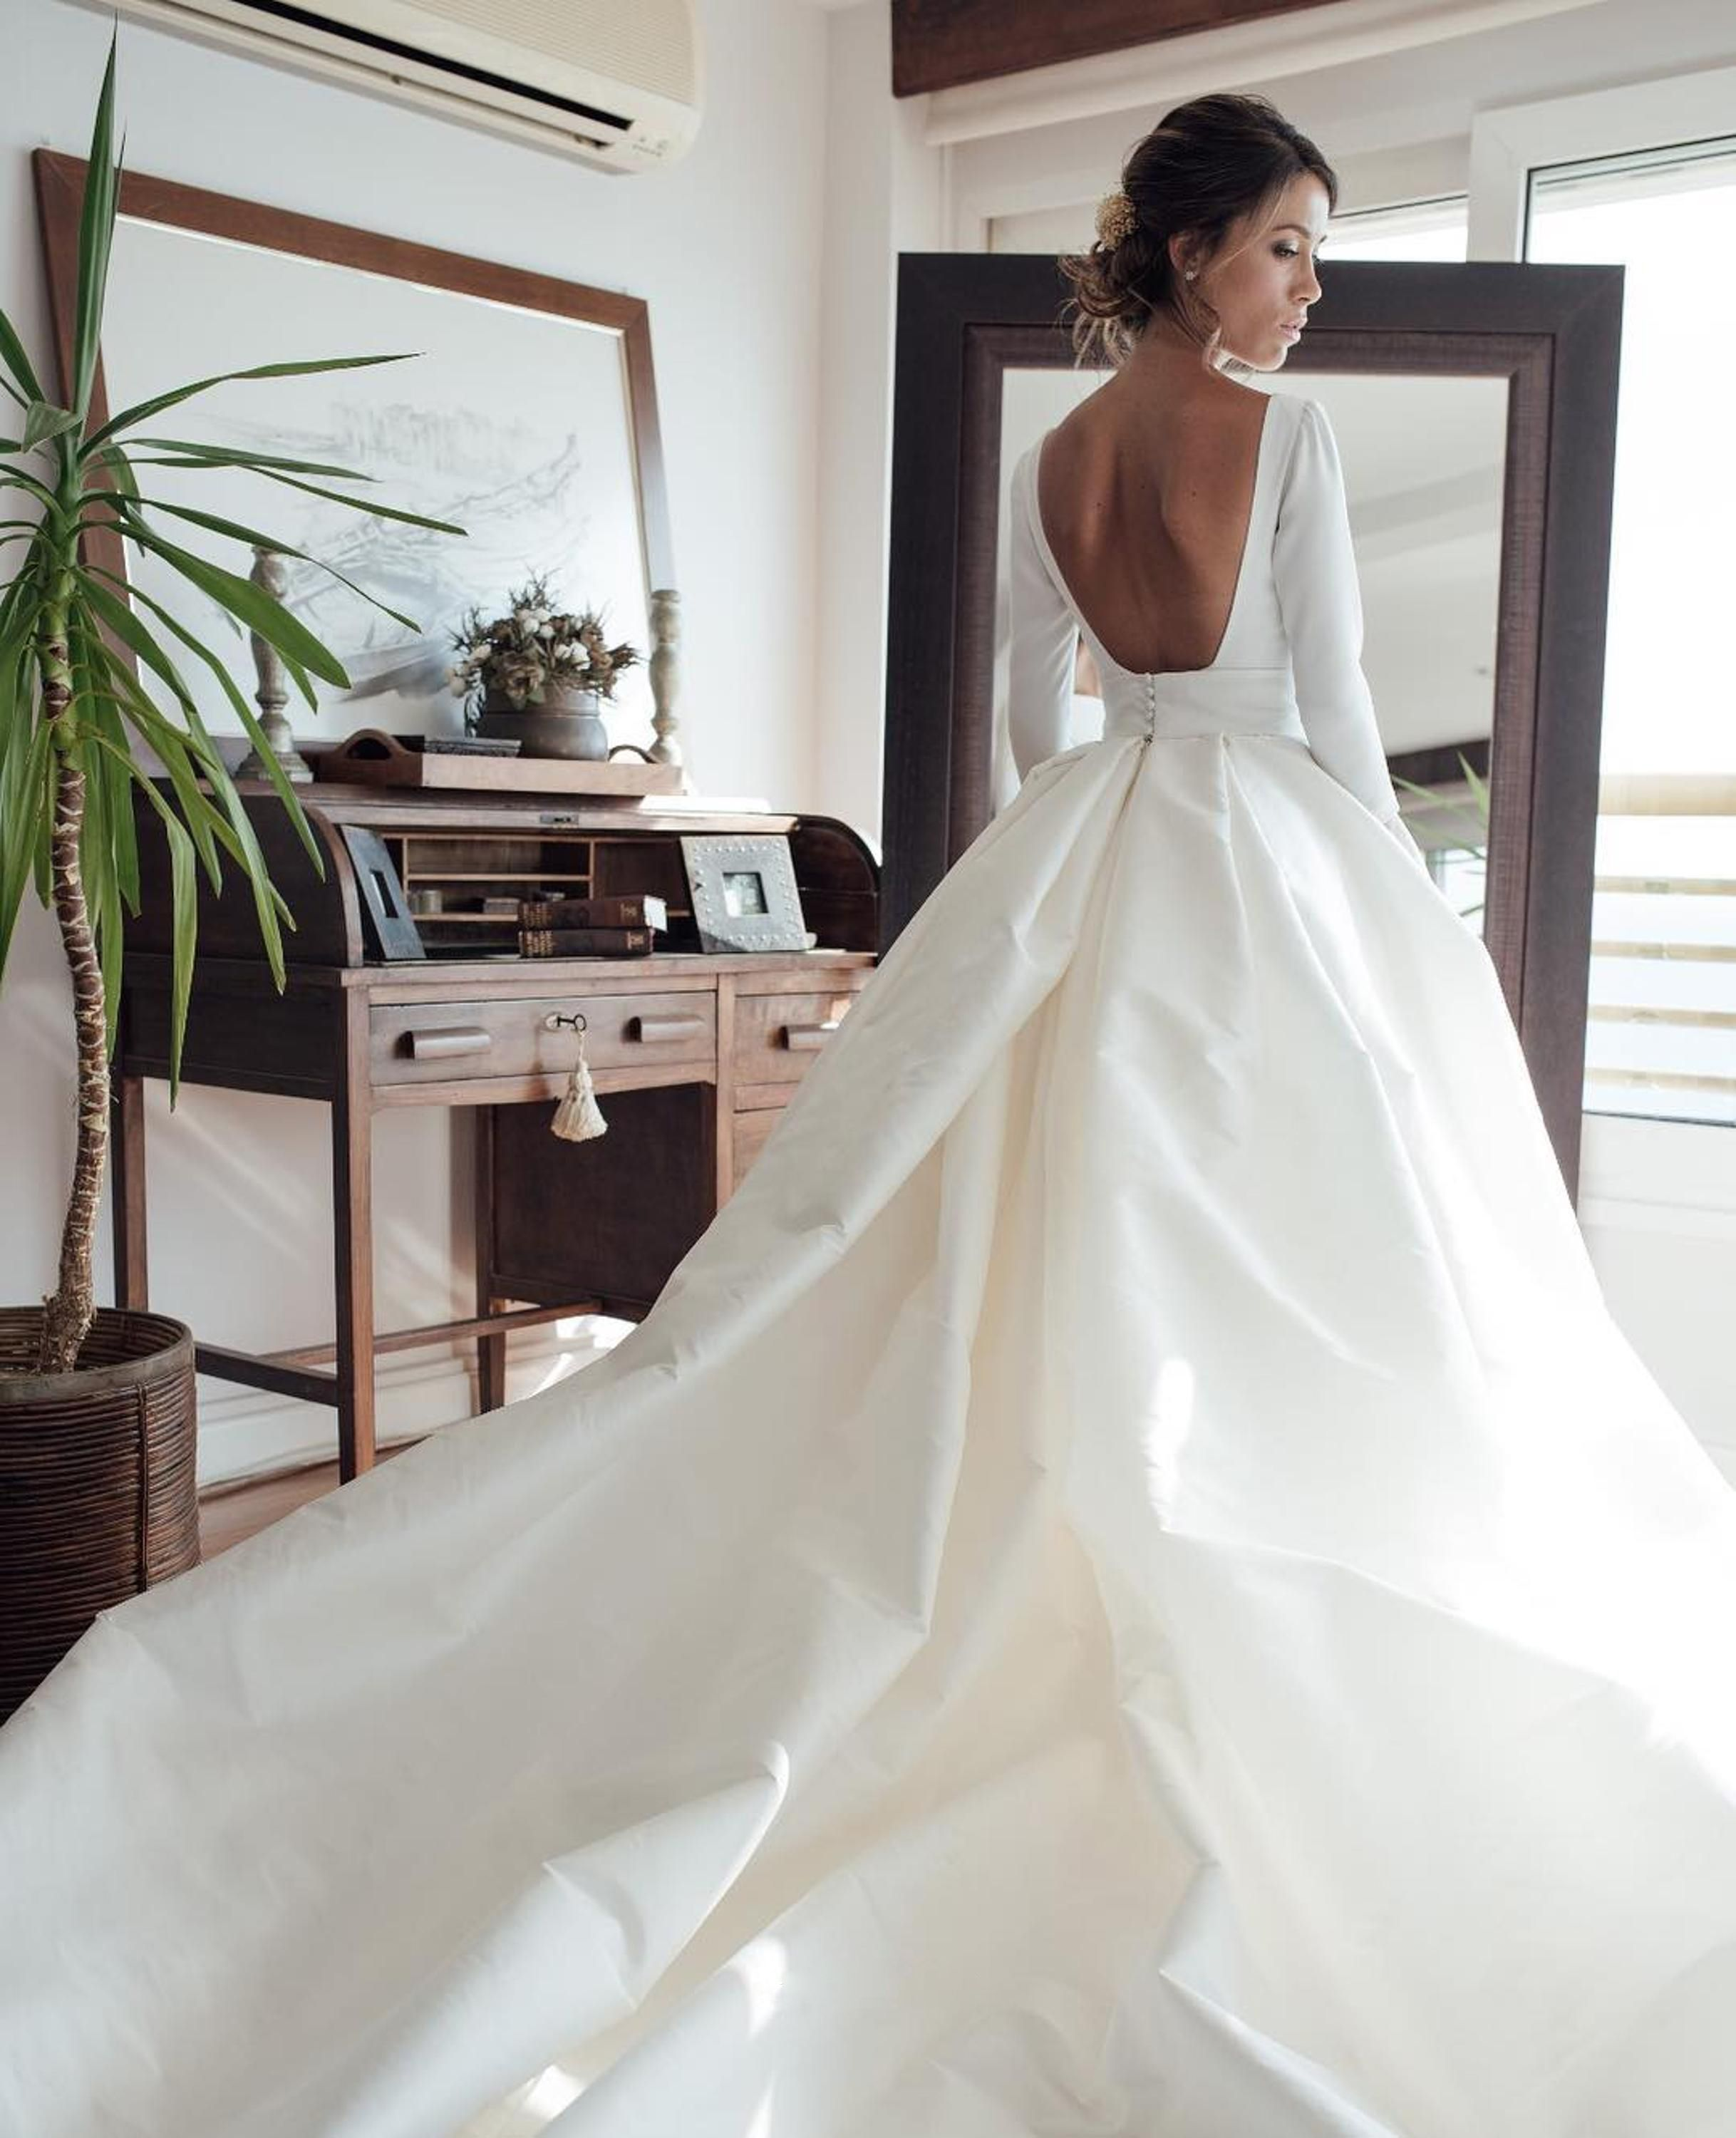 Wedding Dresses 2018 Couture Ball Gowns Elegant Royal: Couture Backless Ball Gown Wedding Dress 2018 Puffy Soft